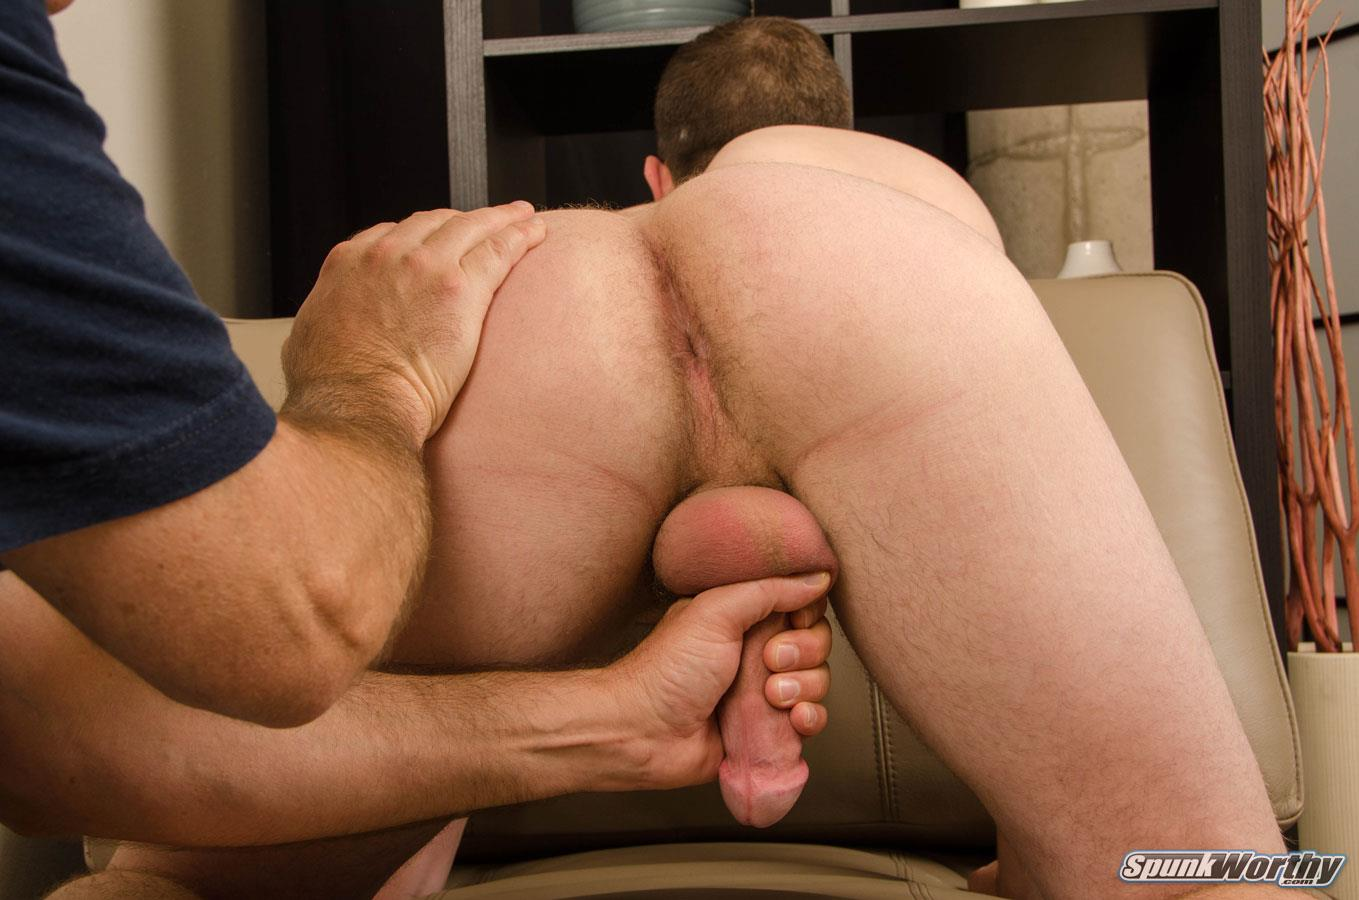 SpunkWorthy-Oliver-Straight-Boy-First-Blow-Job-11 Fresh Faced Straight Boy Gets A Blow Job and Rimming